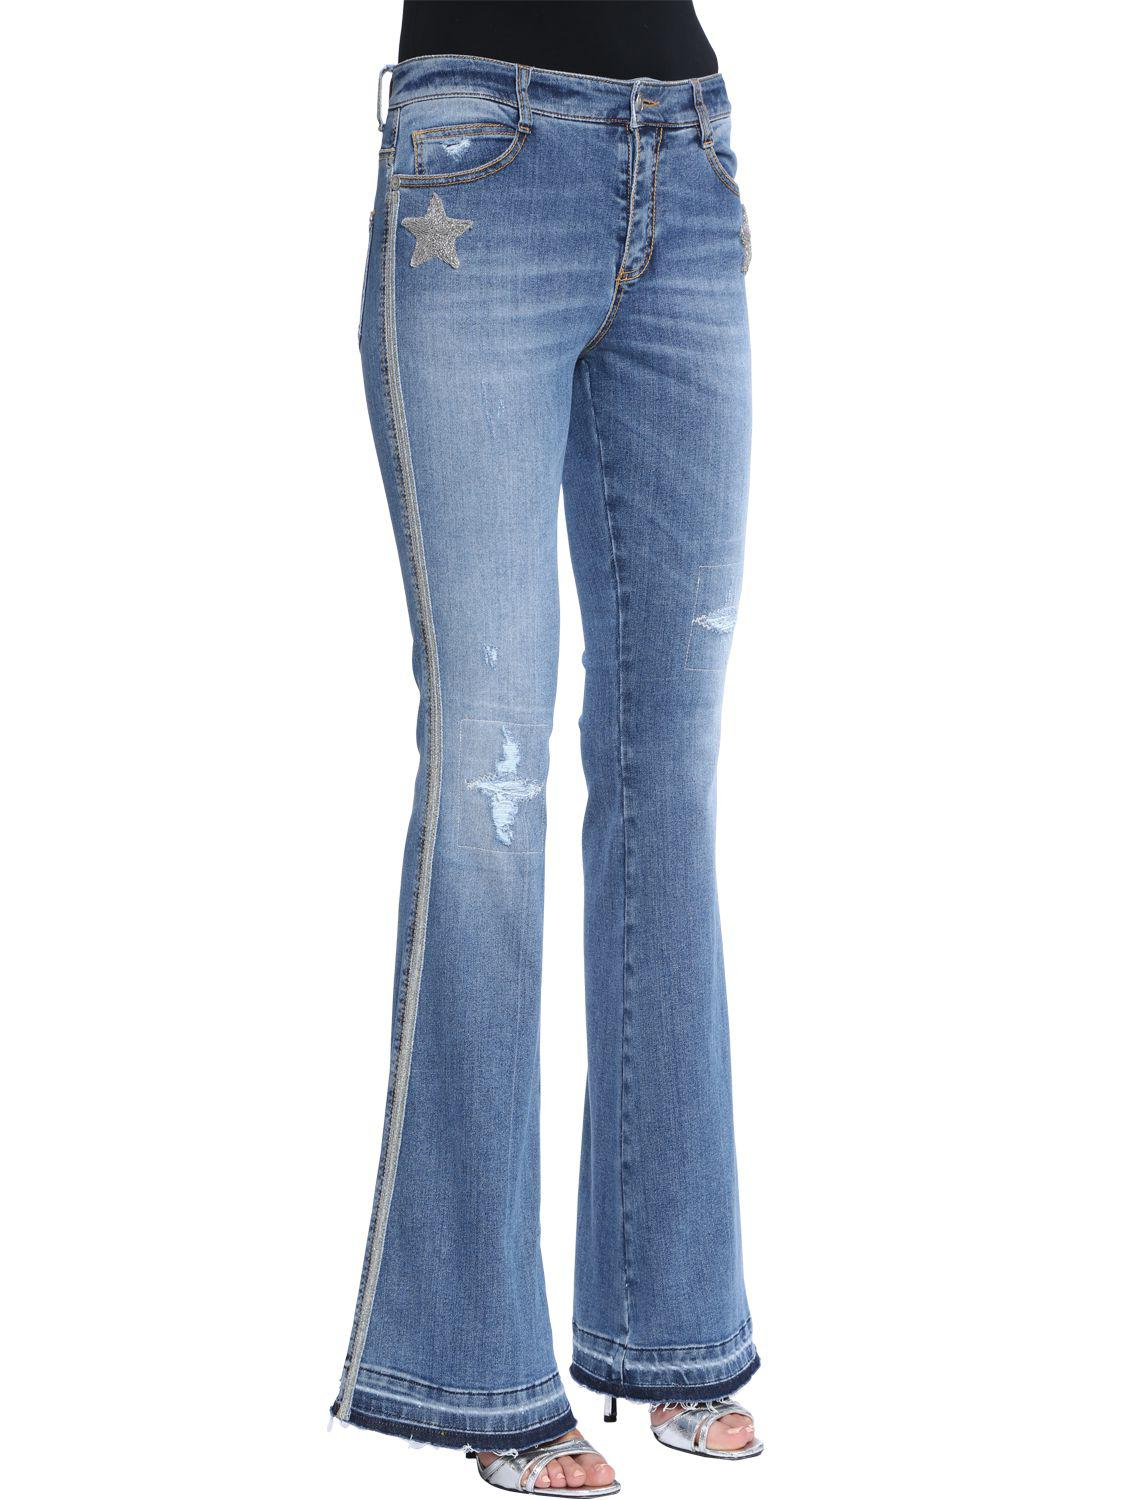 ERMANNO SCERVINO BOOT CUT STARS WASHED DENIM JEANS YEufCD